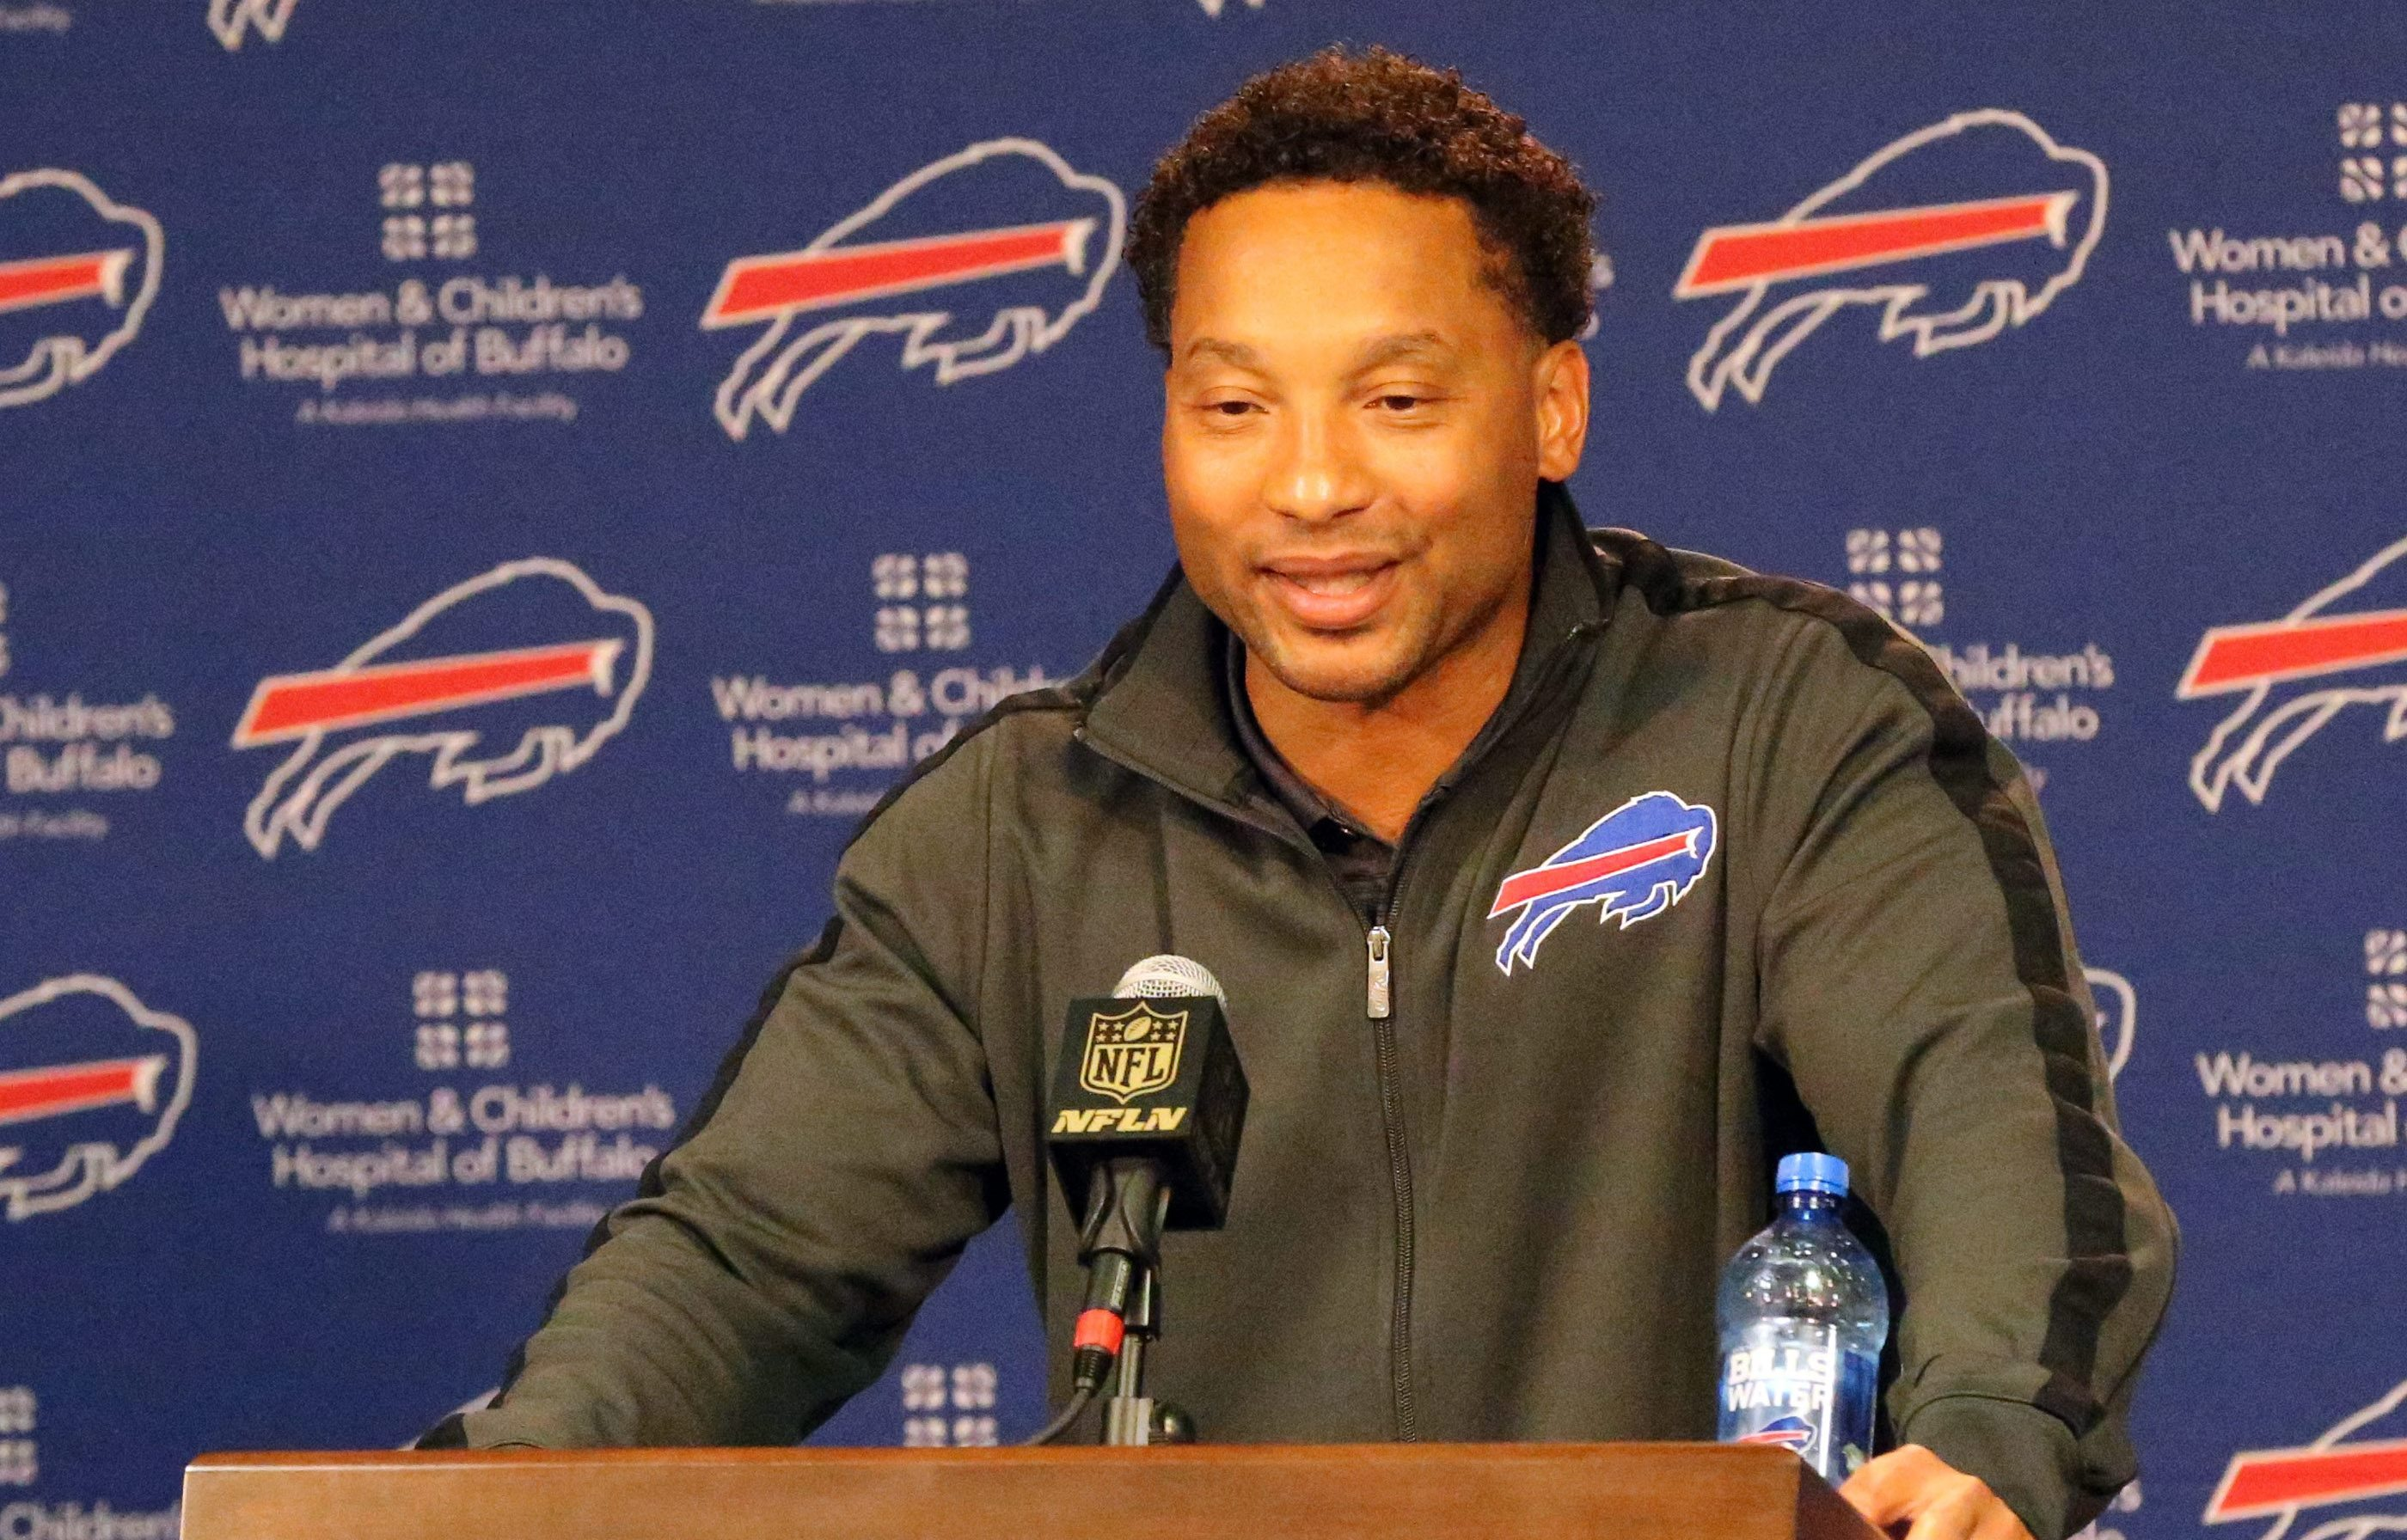 Doug Whaley meets the media late Thursday night near the end of the first round of the NFL Draft. (James P. McCoy/Buffalo News)